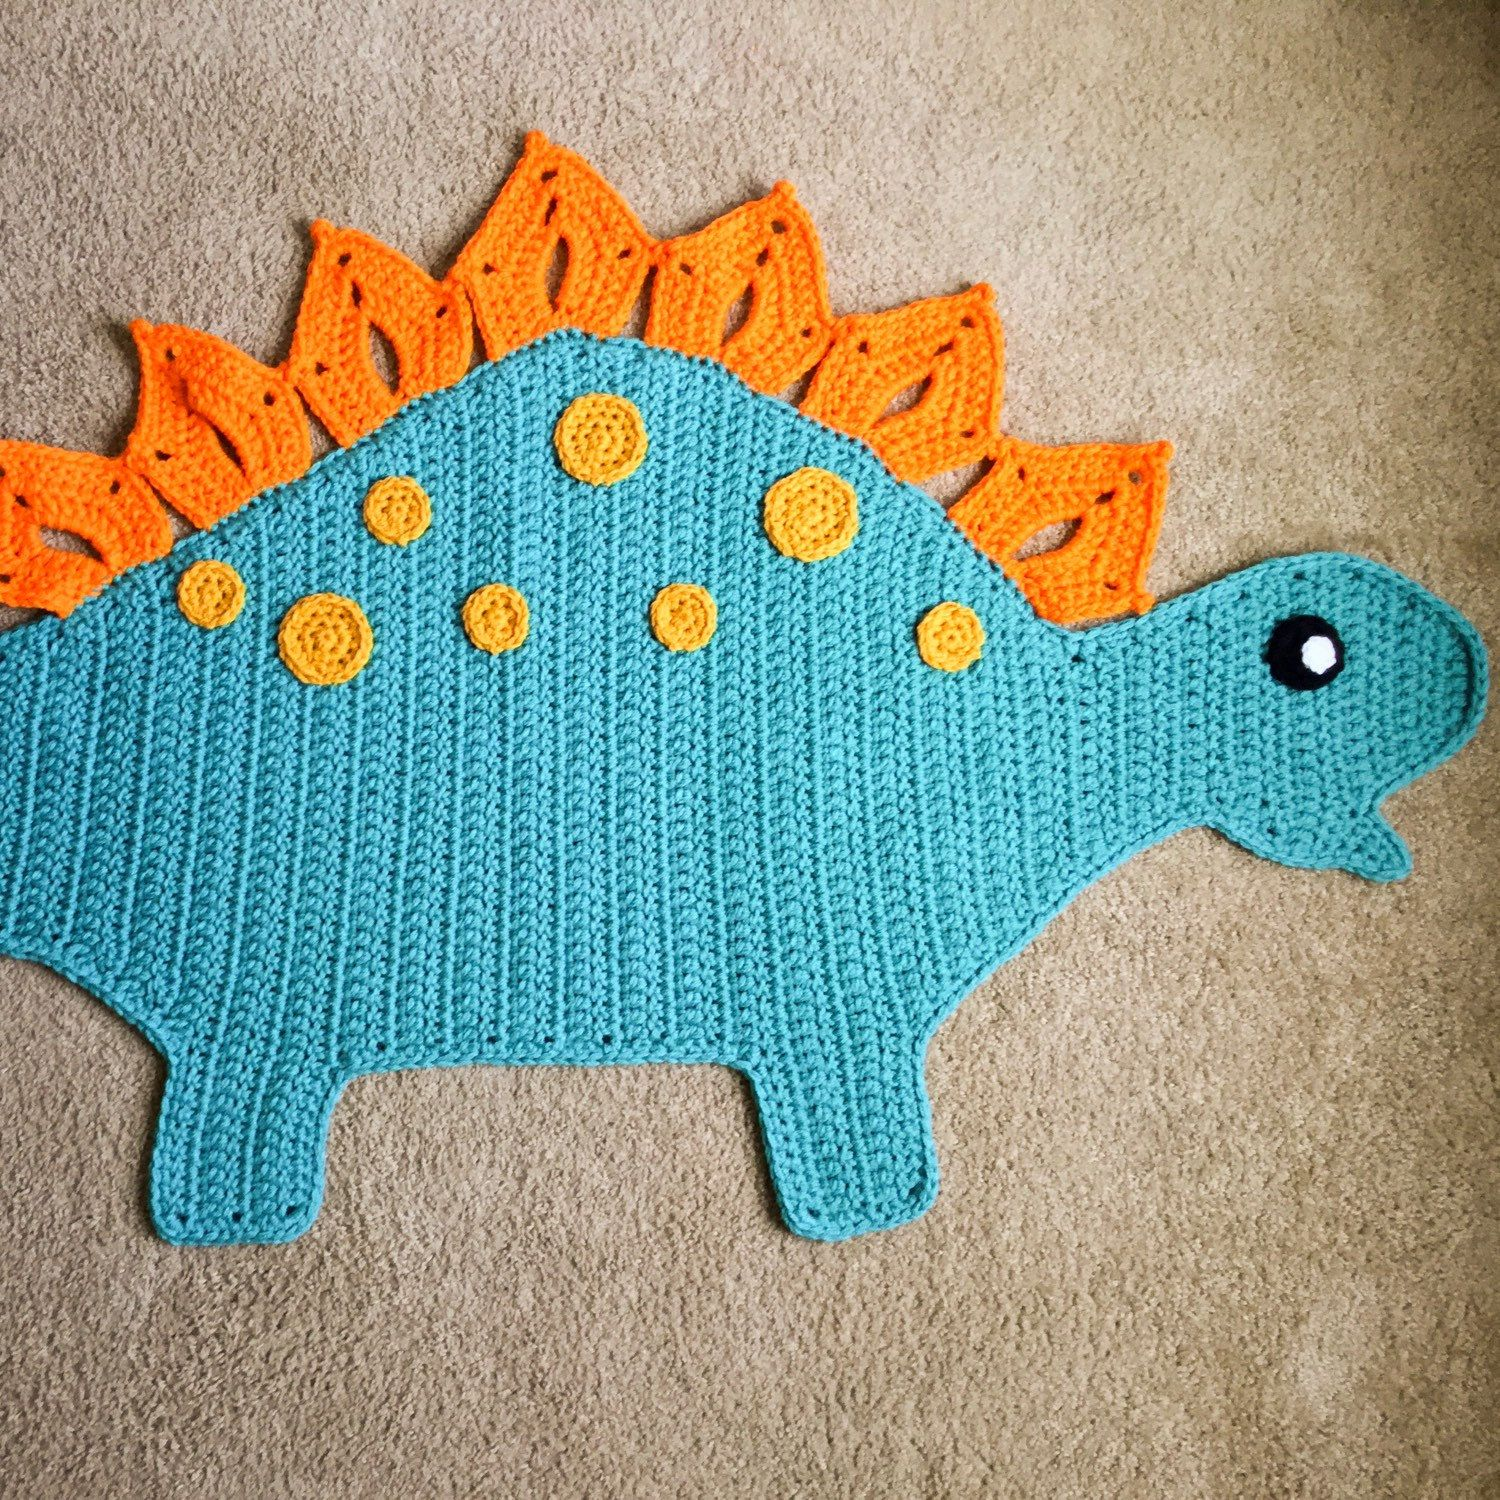 Check Out The Newest Addition To The Shop The Dinosaur Rug Animal Rug Crochet Rug Dinosaur Rug